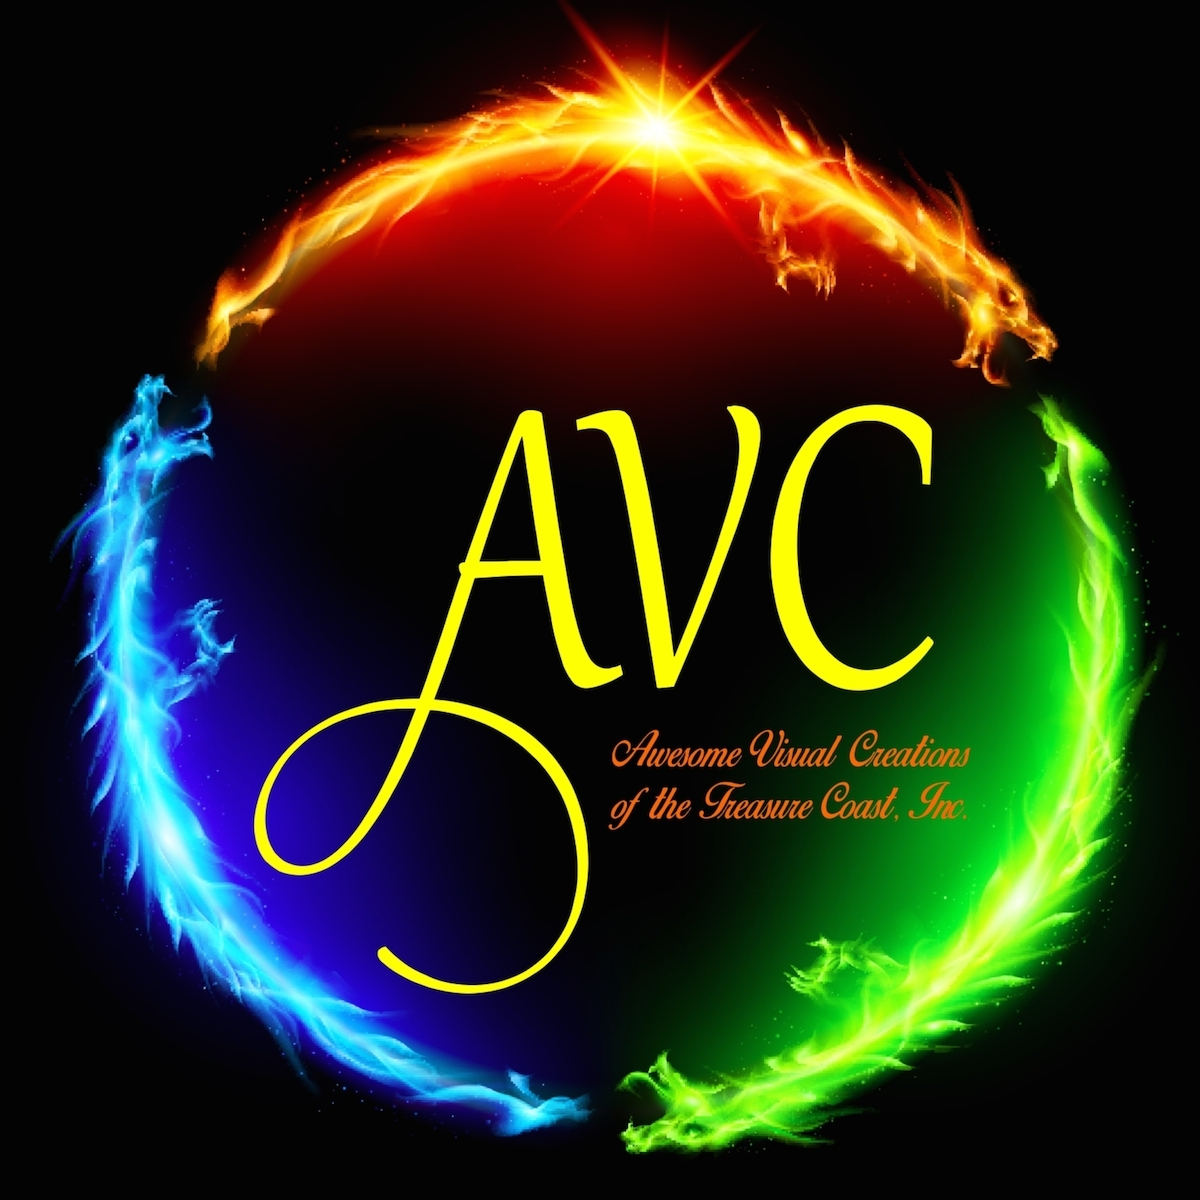 Awesome Visual Creations / AVC Laser Engraving